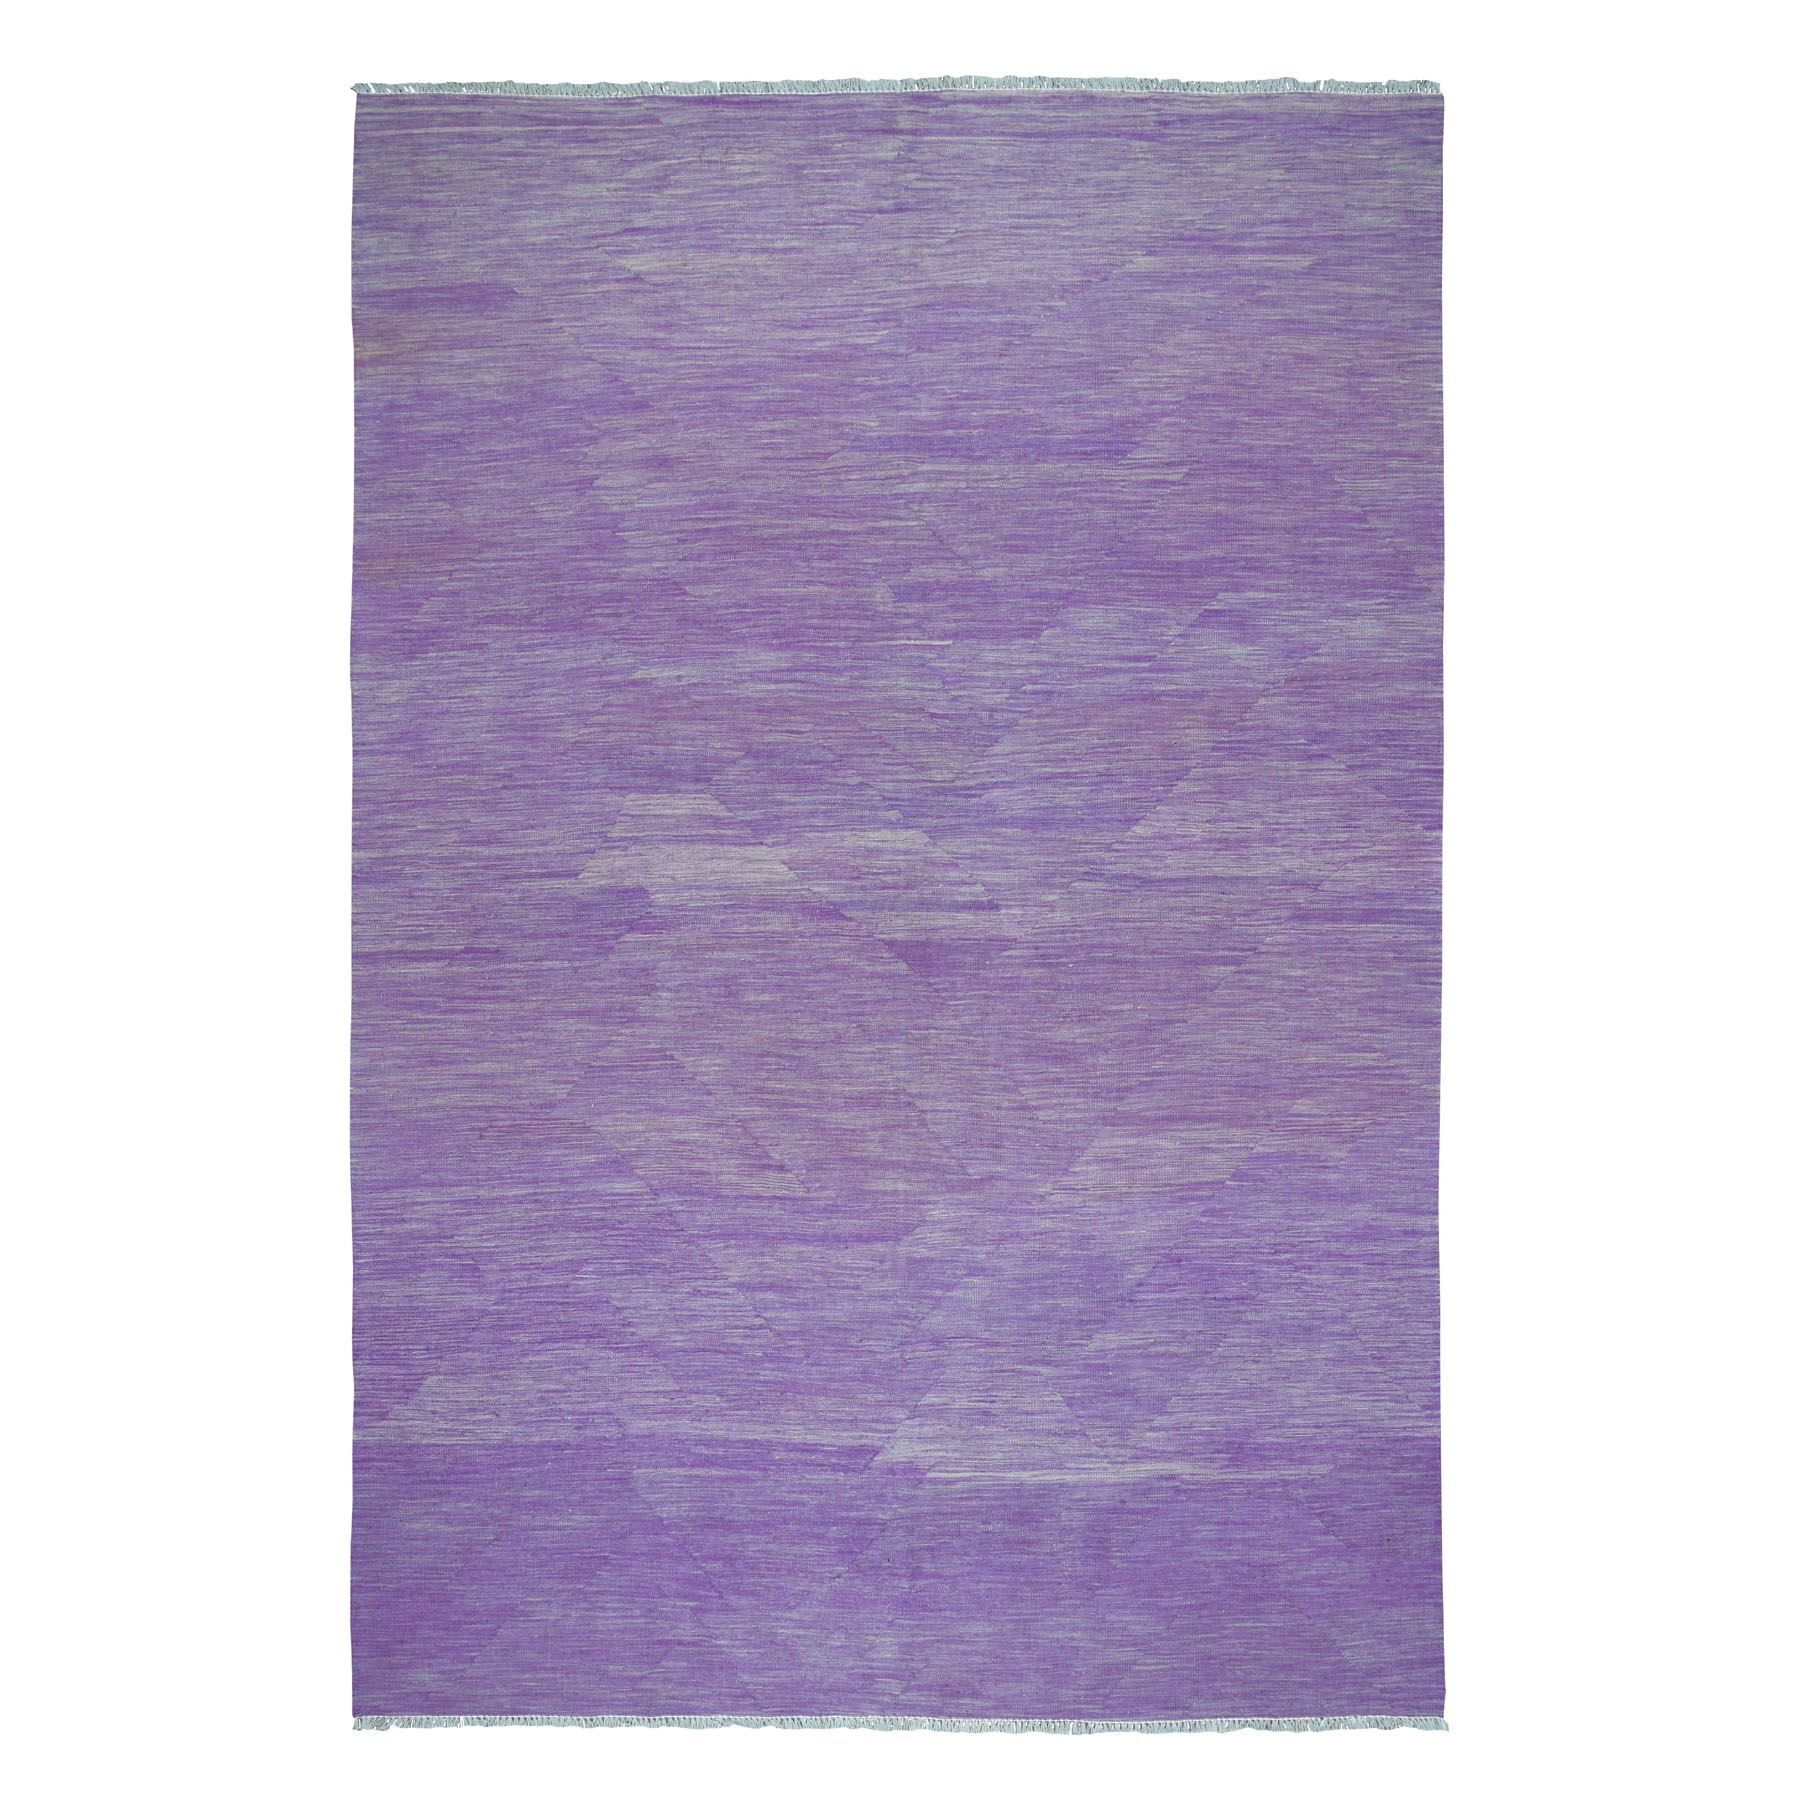 "6'8""x9'8"" Lavender Shades Flat Weave Kilim Pure Wool Hand Woven Oriental Rug"